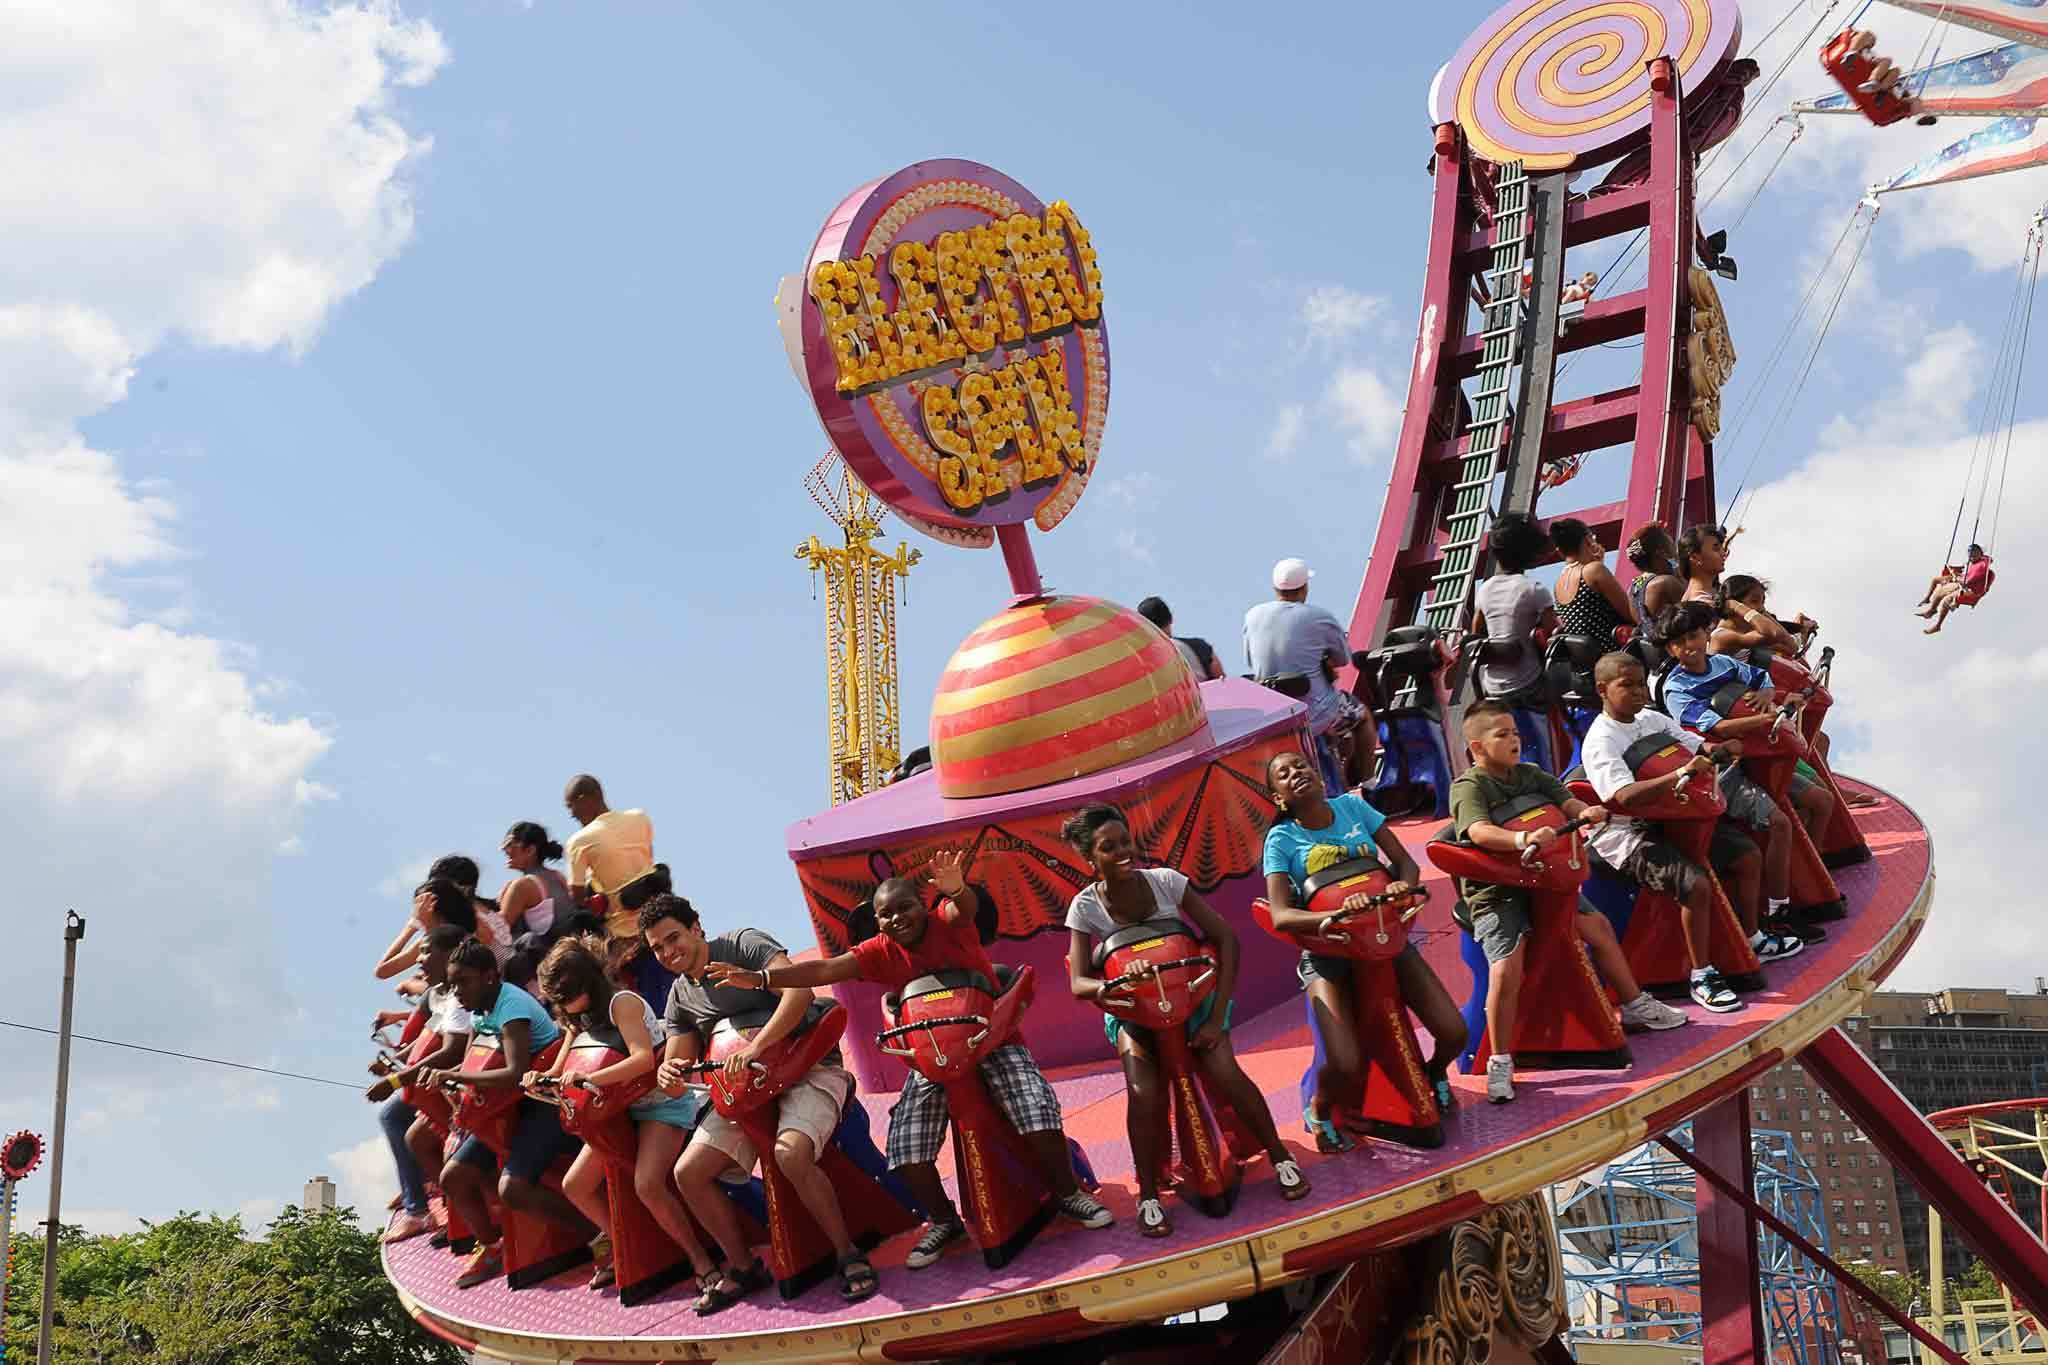 Amusement parks near NYC